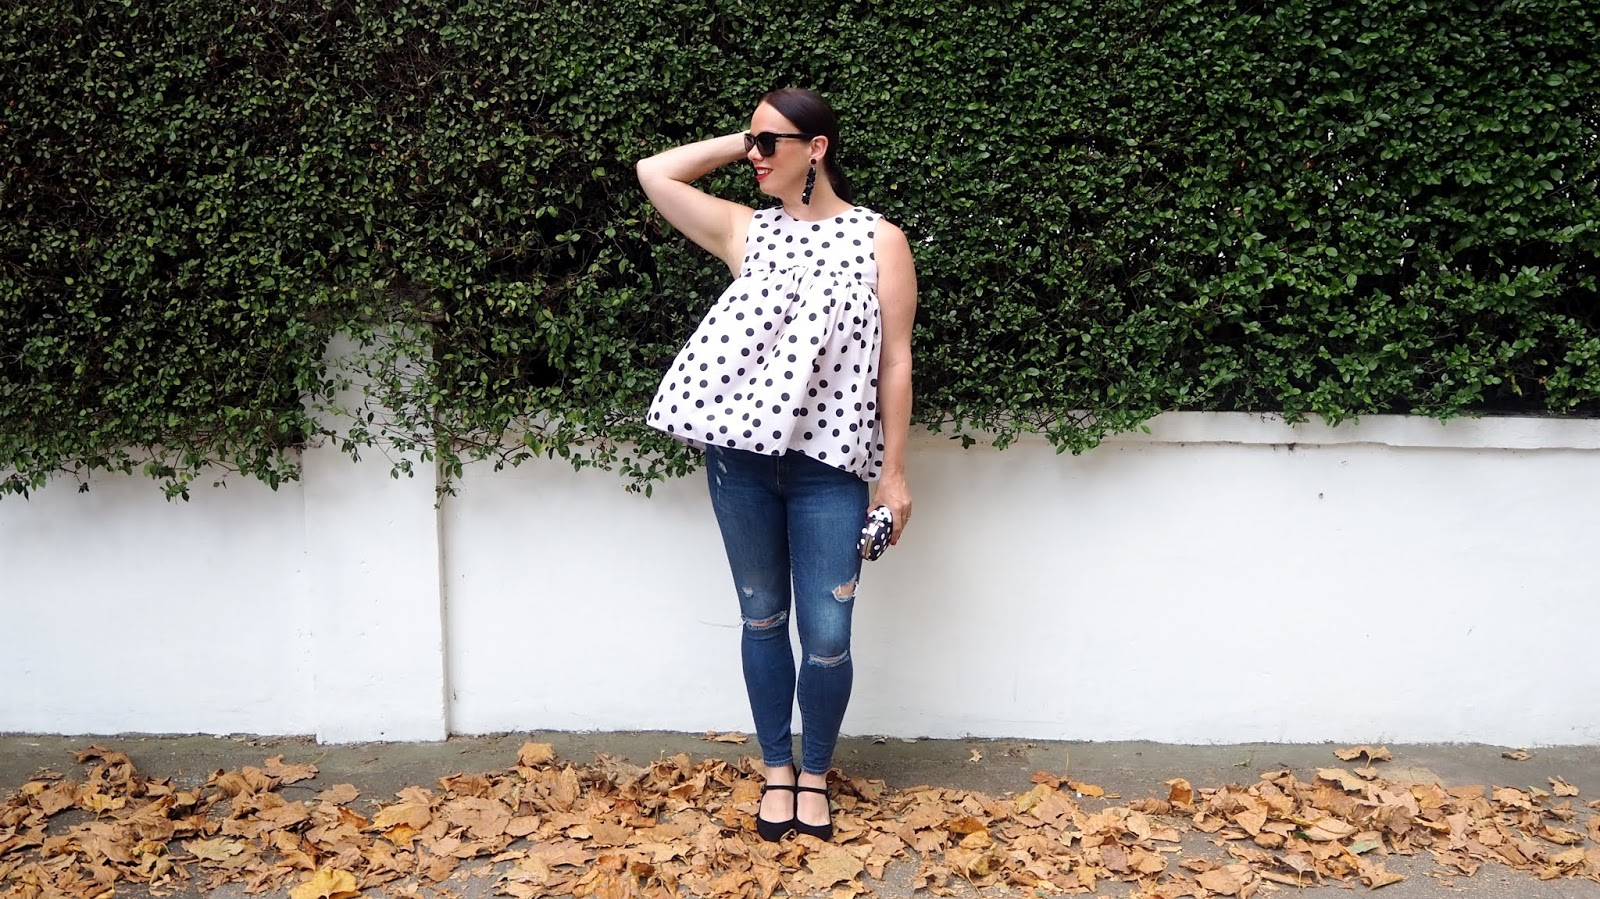 polka dot taffeta top with ripped jeans, contrasting clutch and black maryjane heels